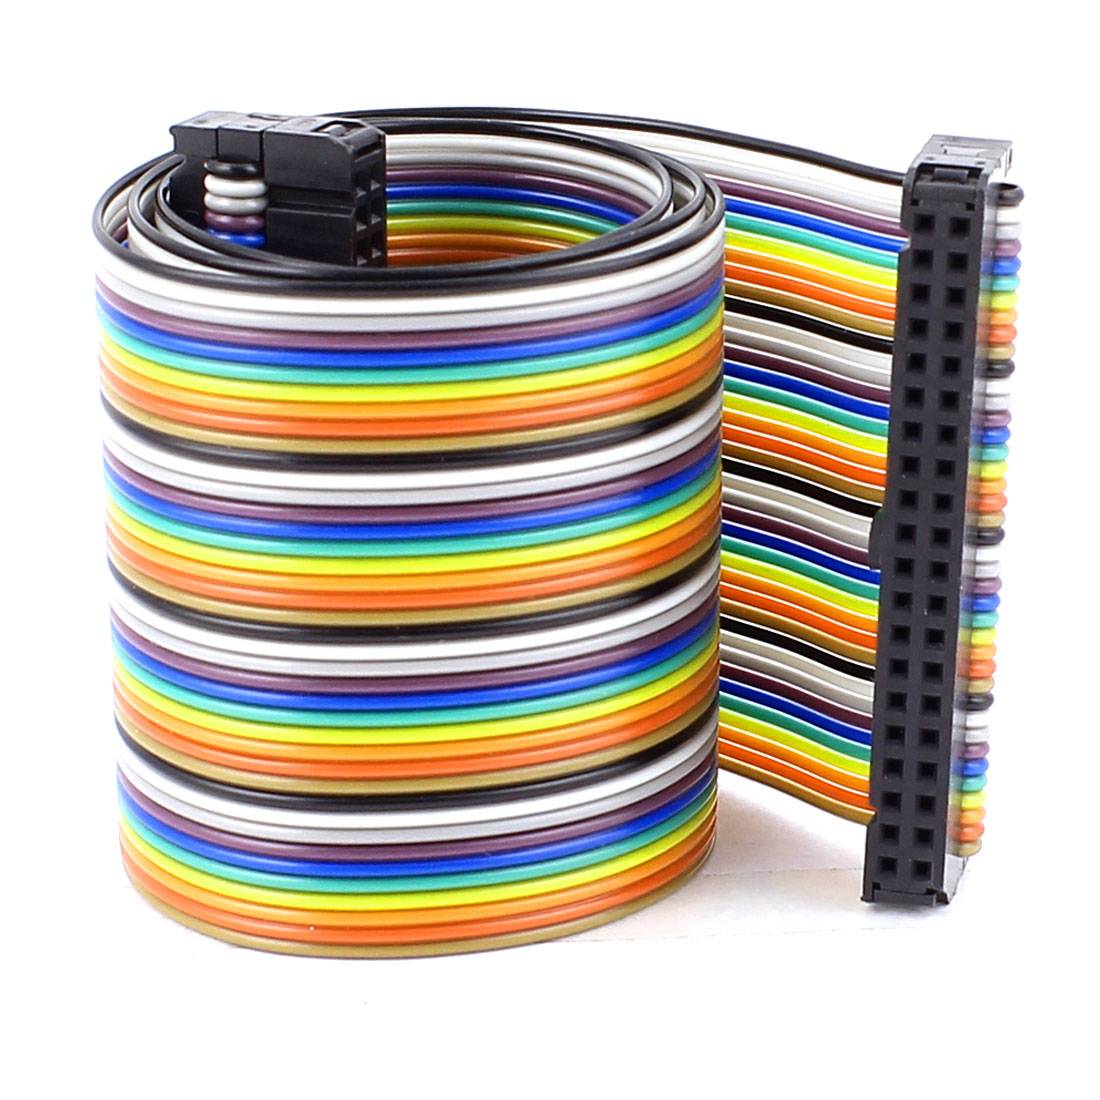 48cm 40pin 2.54mm Female to Female Breadboard IDC Wire Cable